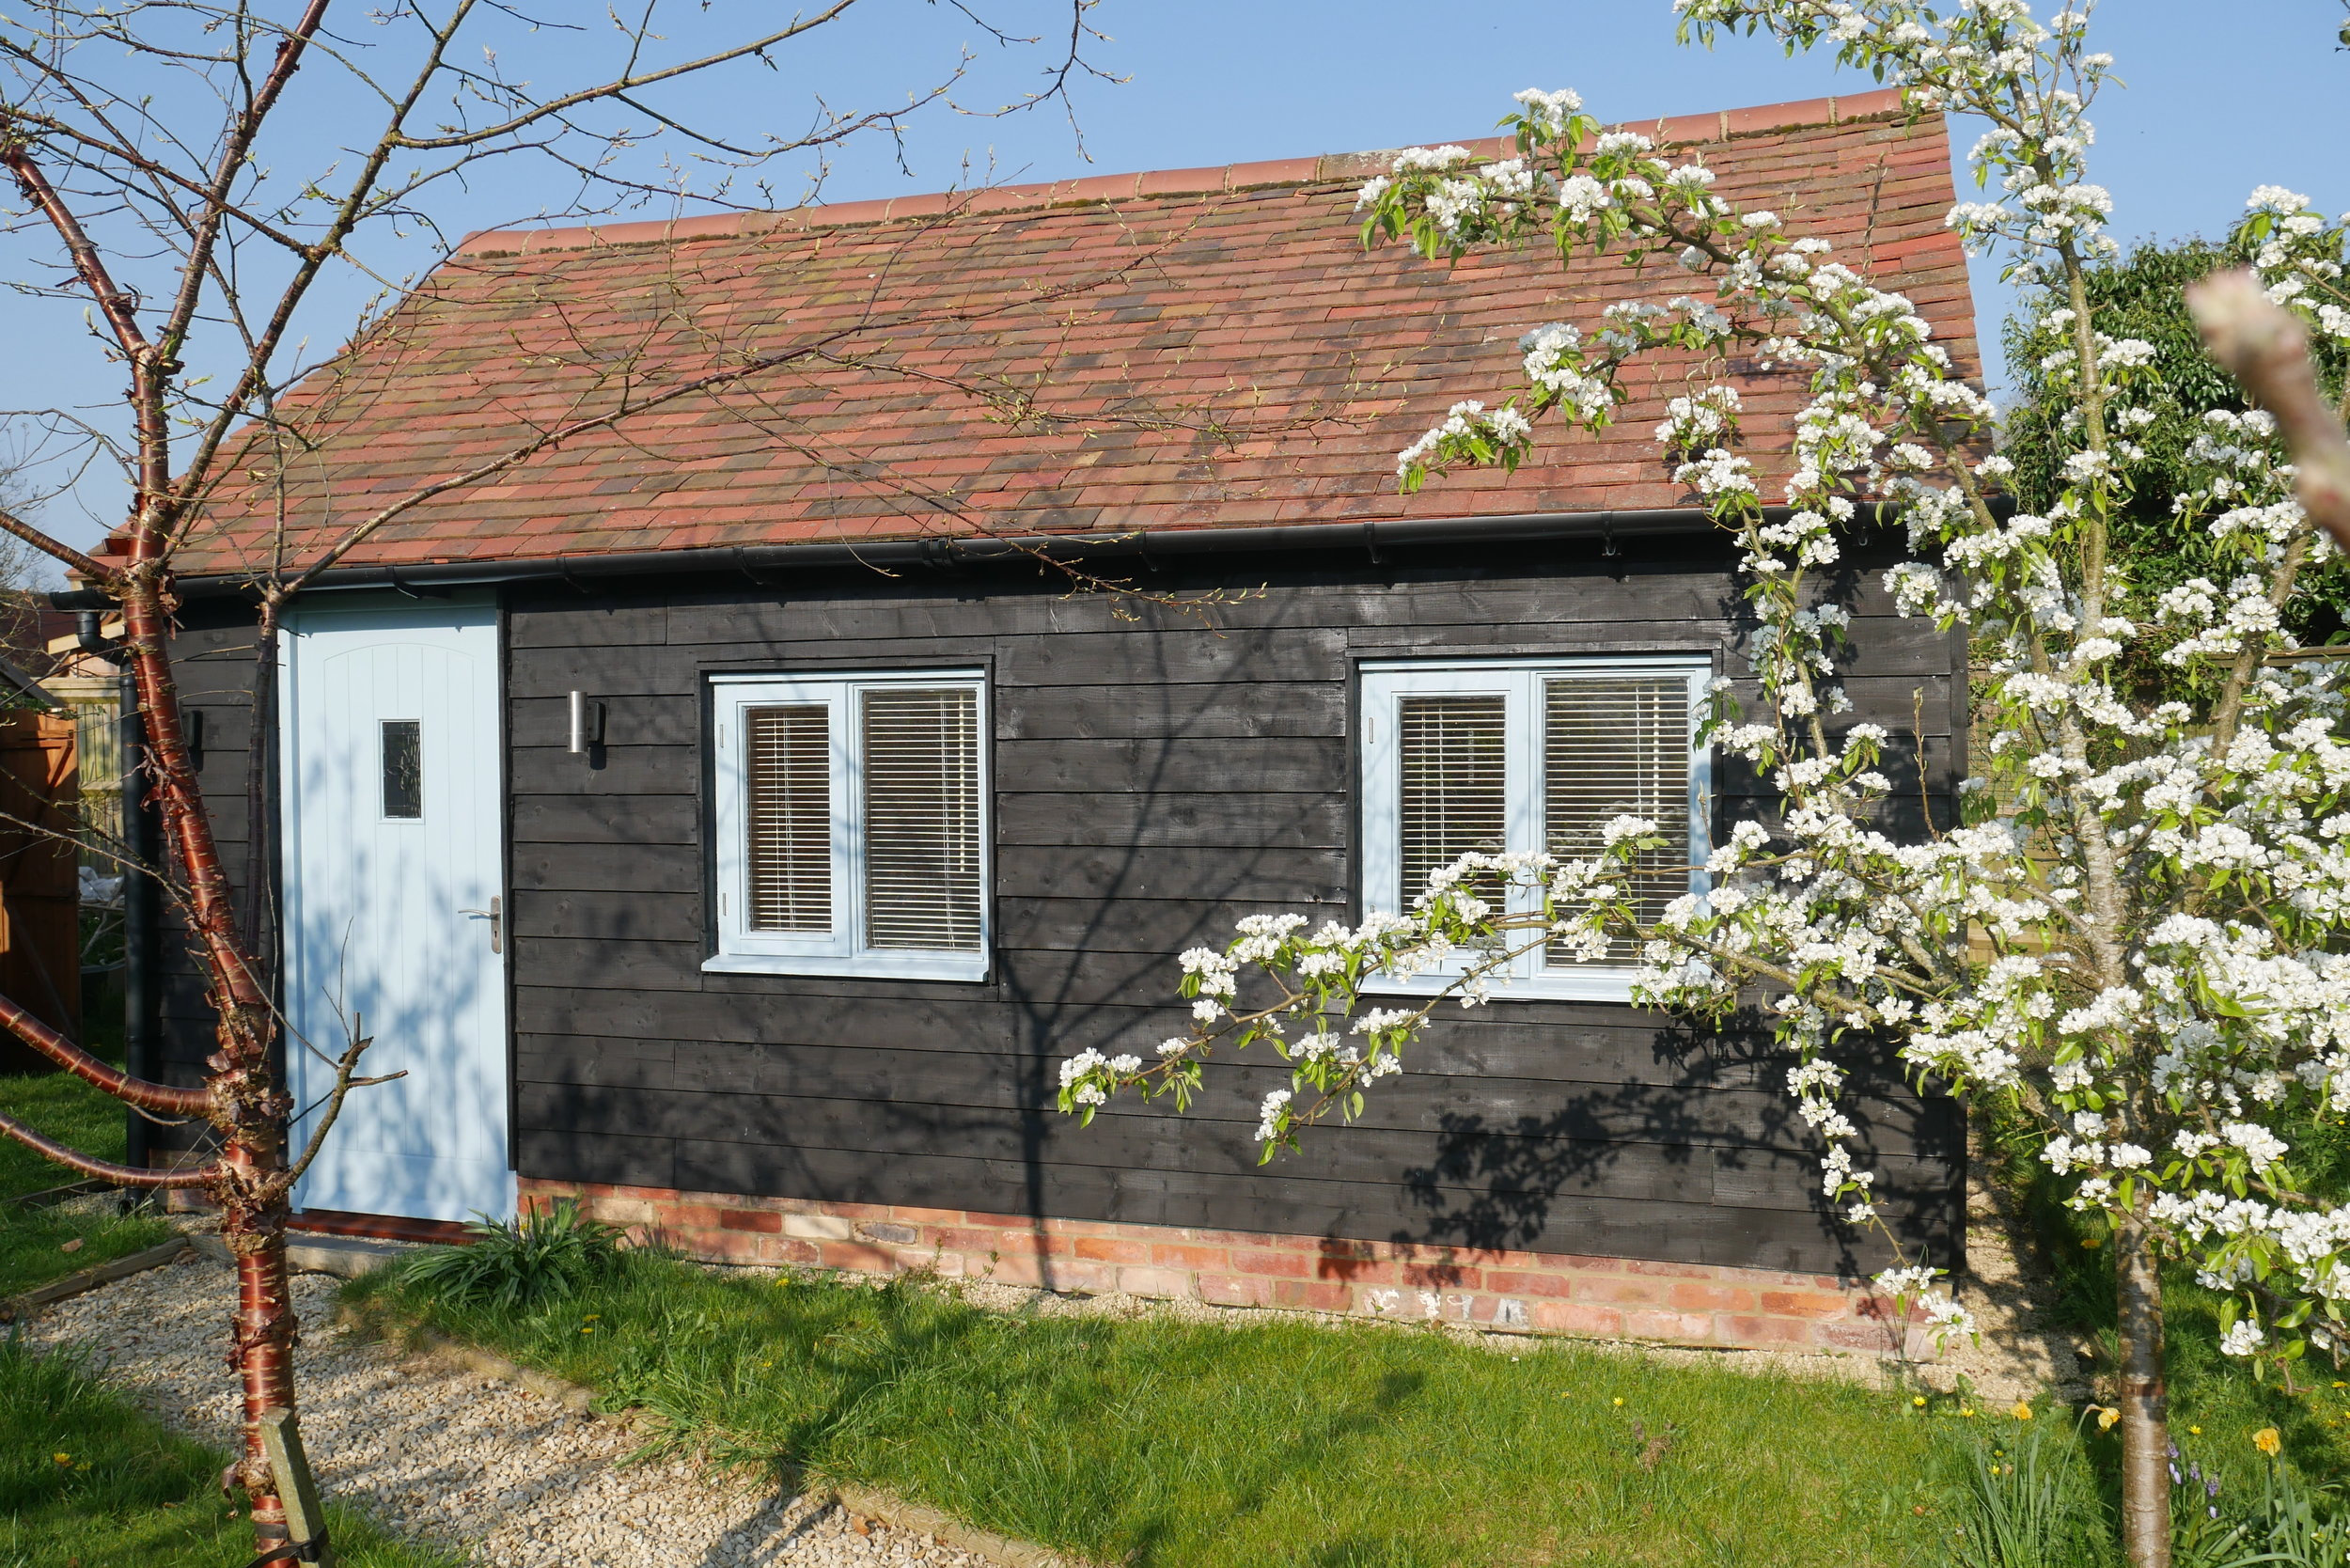 The Little Orchard Clinic - A clinic in the heart of the Chilterns